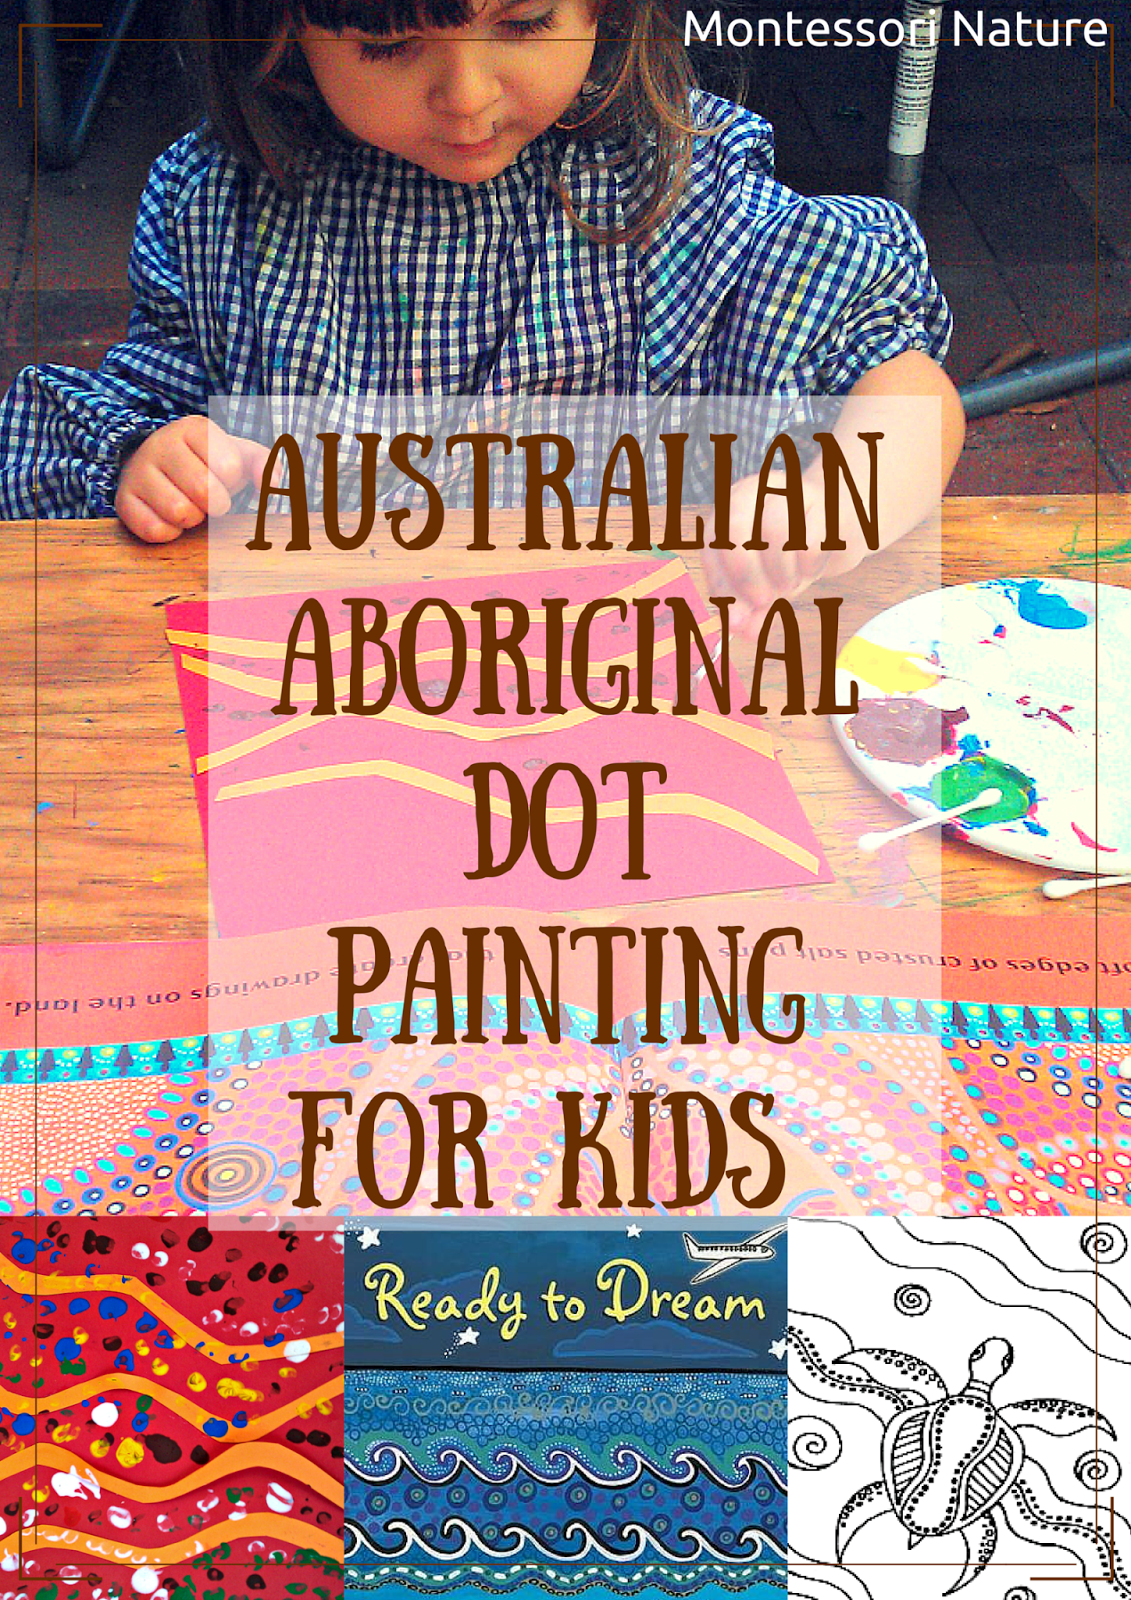 Australian Aboriginal Dot Painting For Kids And Art Resources Diy